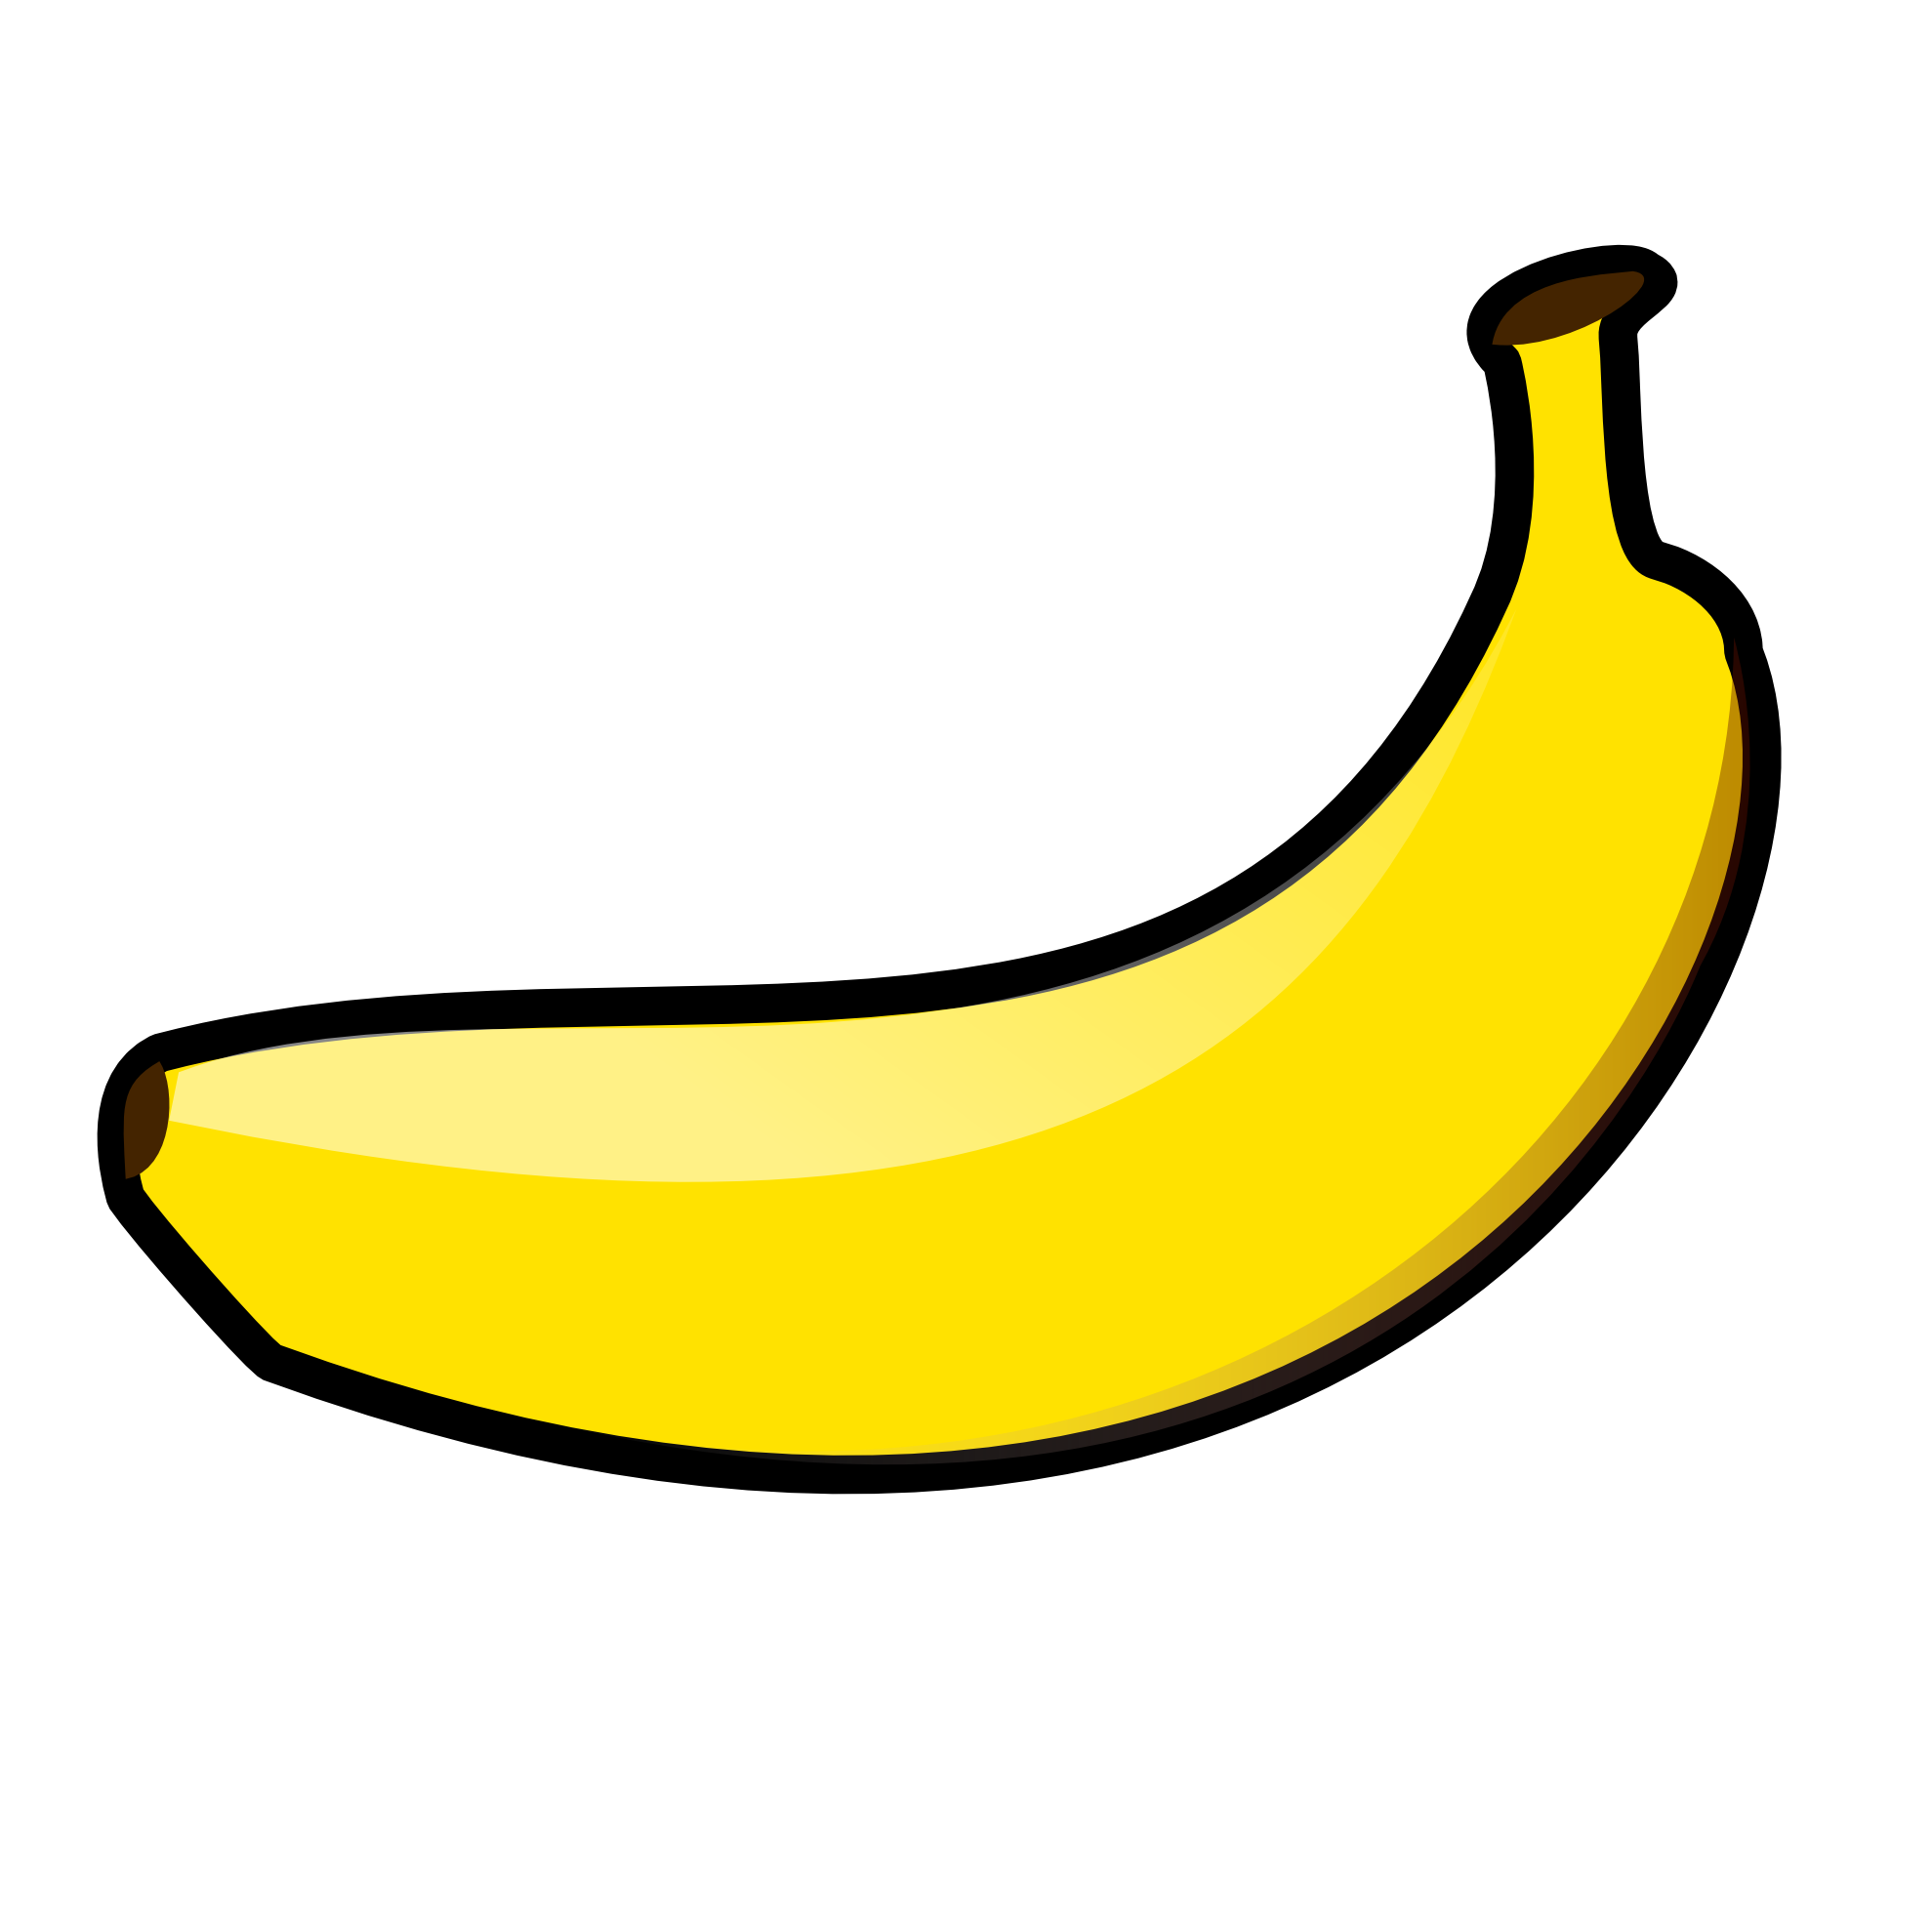 banana clipart black and education play clip art printables banana